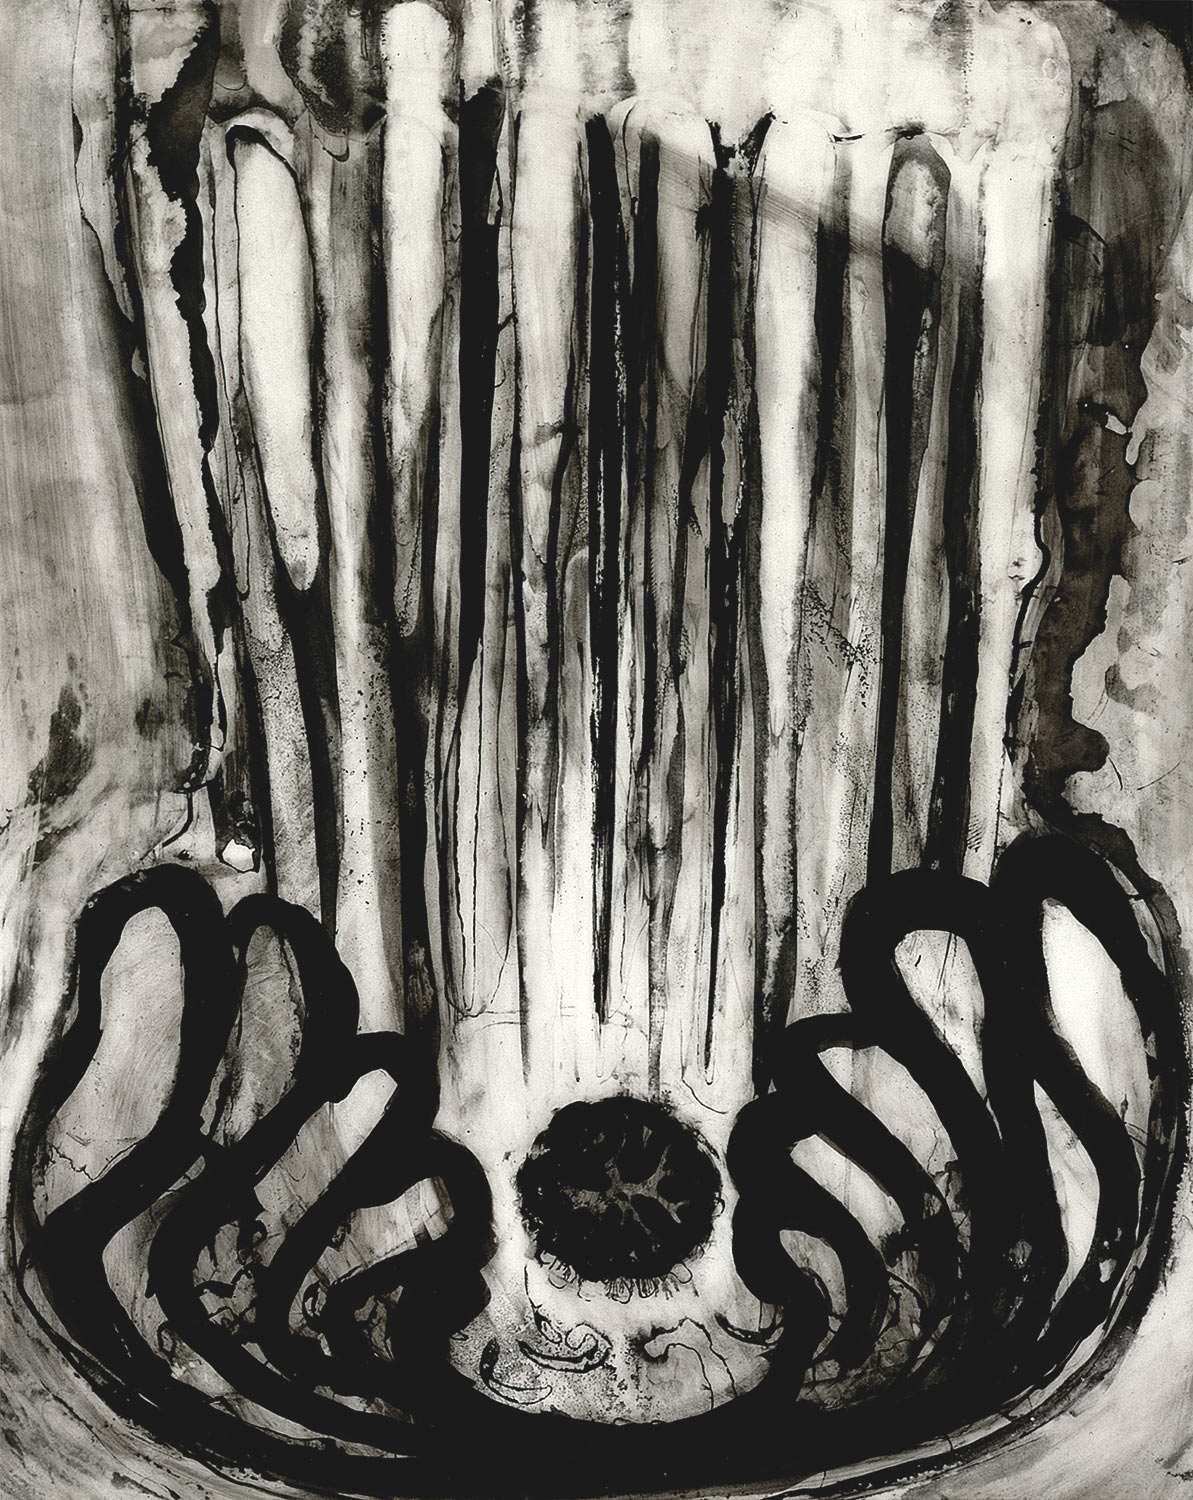 """Brian Wood <br> """"Held,"""" 1999 <br> Ink on mylar <br> 8.5 x 7 in."""